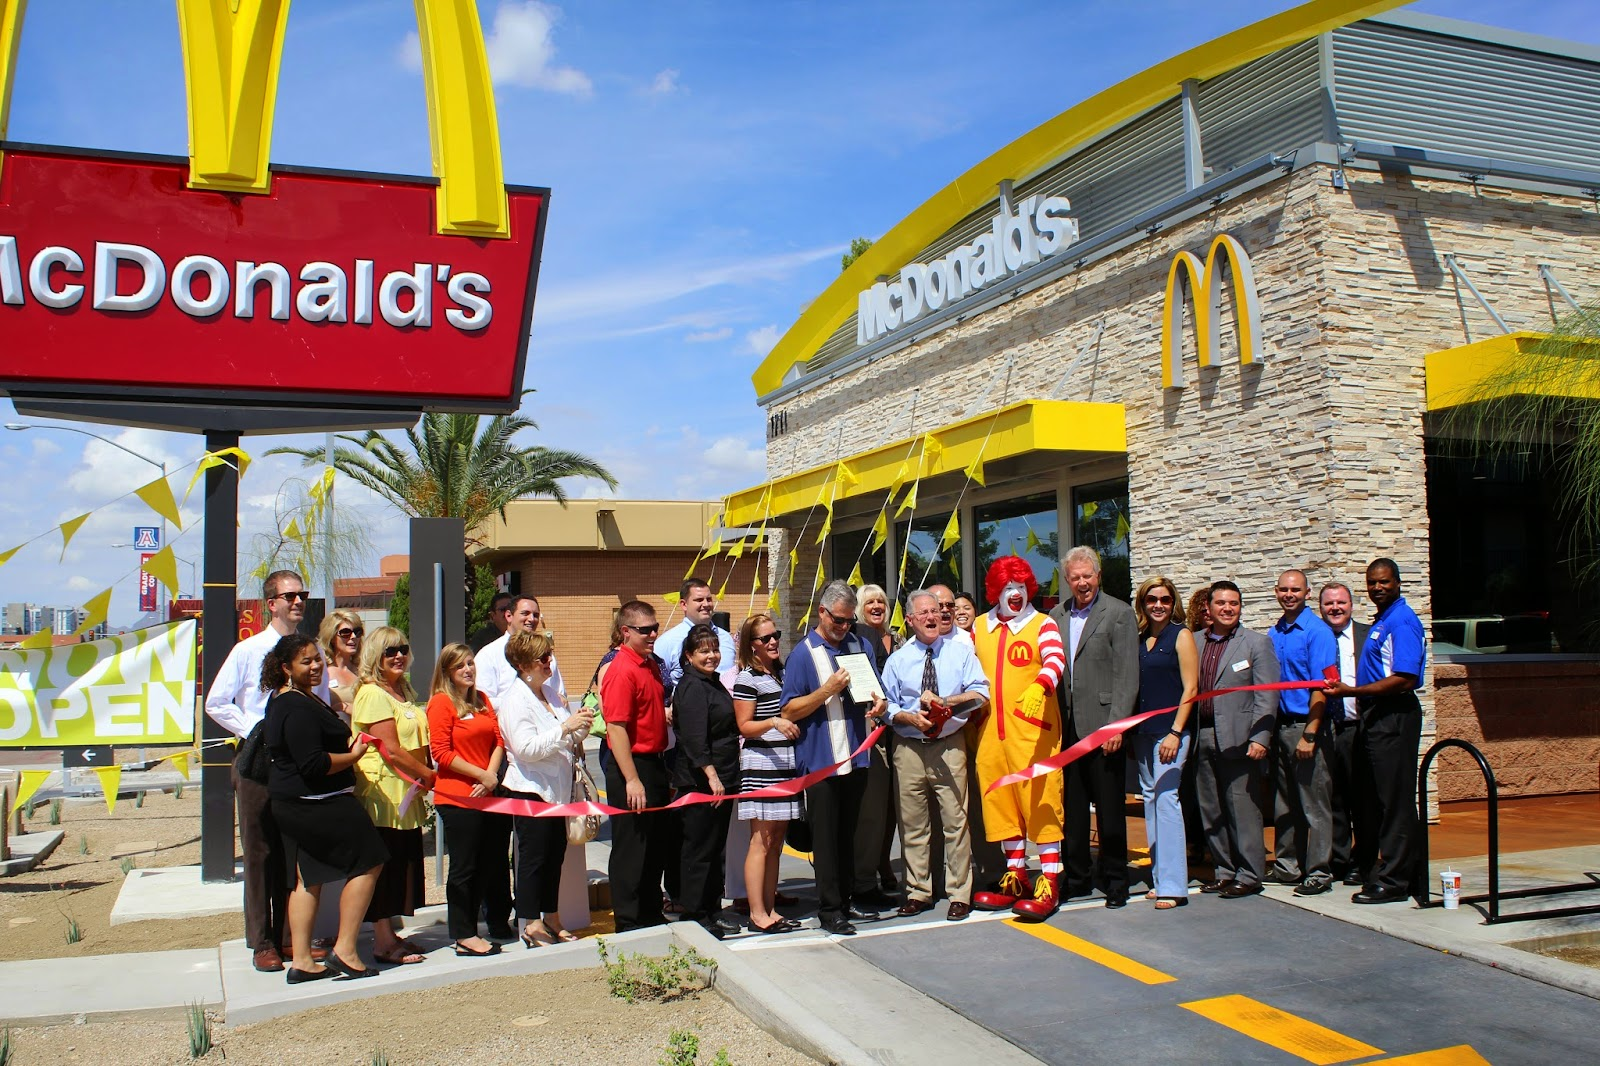 Mayor Jonathan Rothschild, Michael Varney (Tucson Metro Chamber), Tannya Gaxiola and UA Officials, Ronald McDonald and Karen and Michael Osborne (Owner/Operators) dedicate a brand new McDonald's totally rebuilt from the ground up at Speedway/Campbell near the University of Arizona.